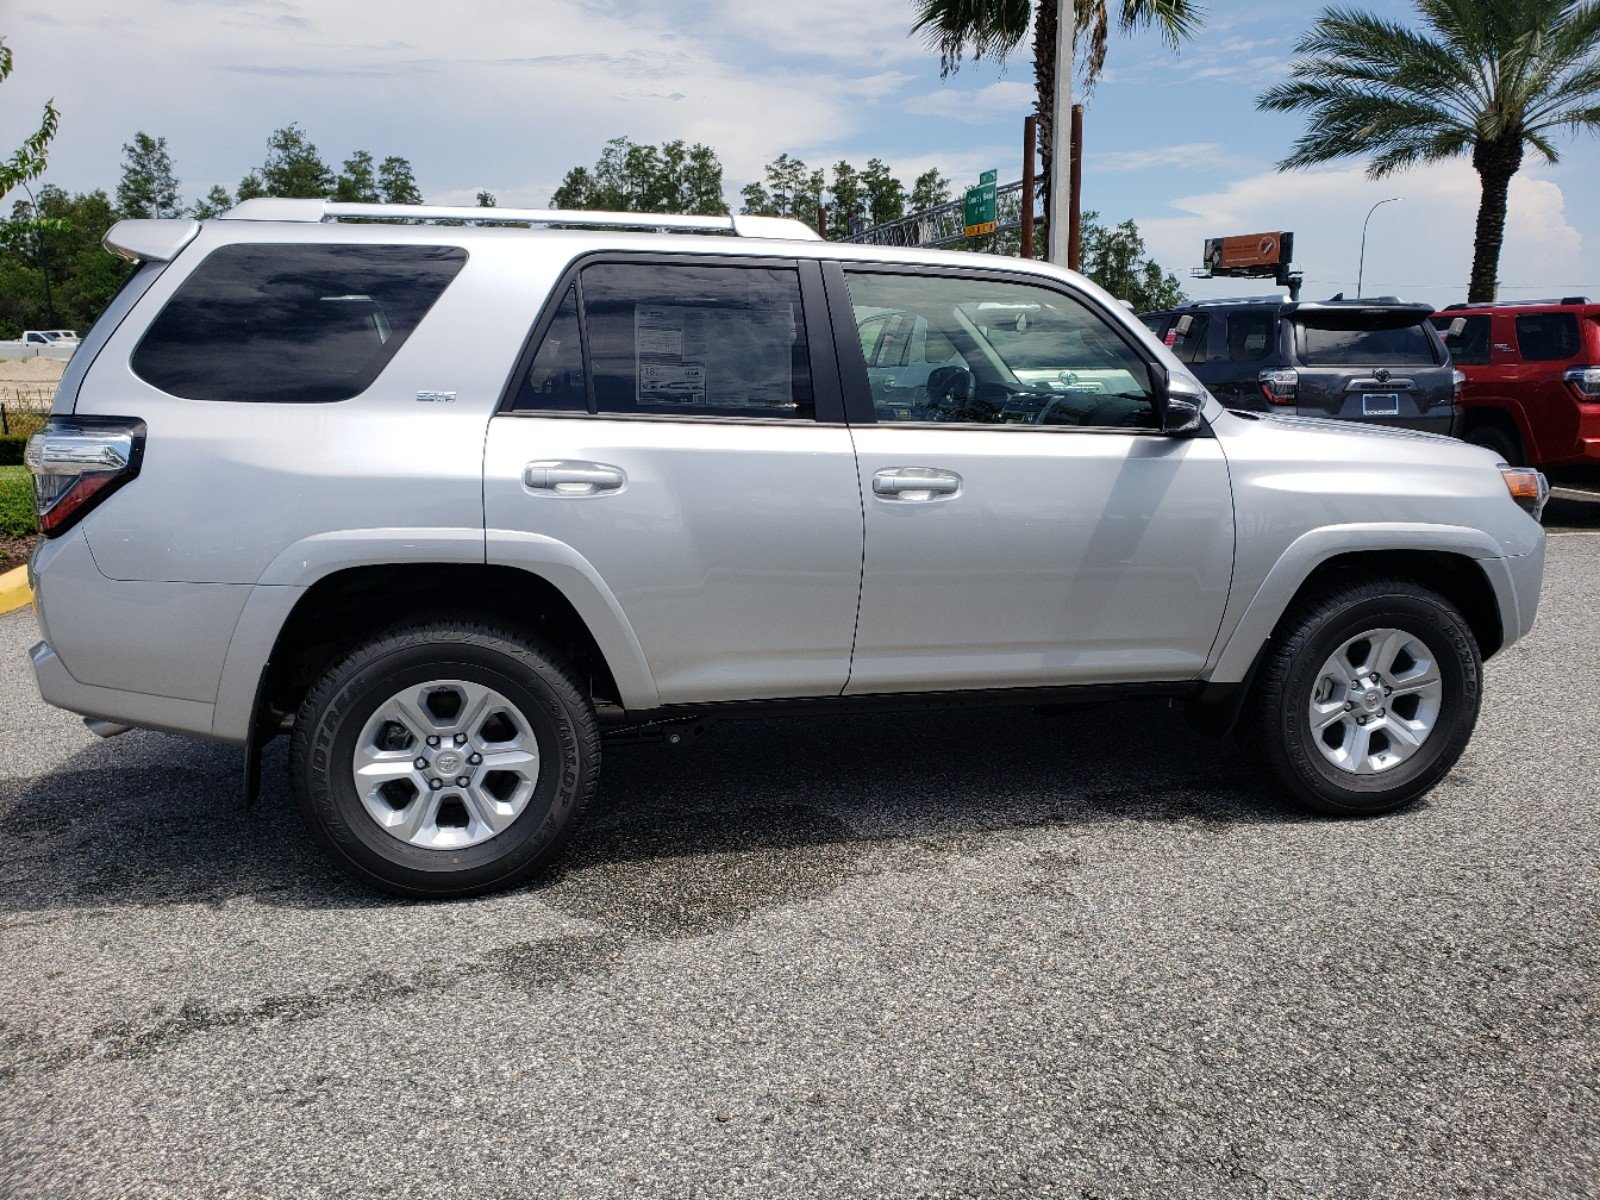 f2dbd59faaab3058916a428d68d49e72 Great Description About Used toyota 4runner for Sale